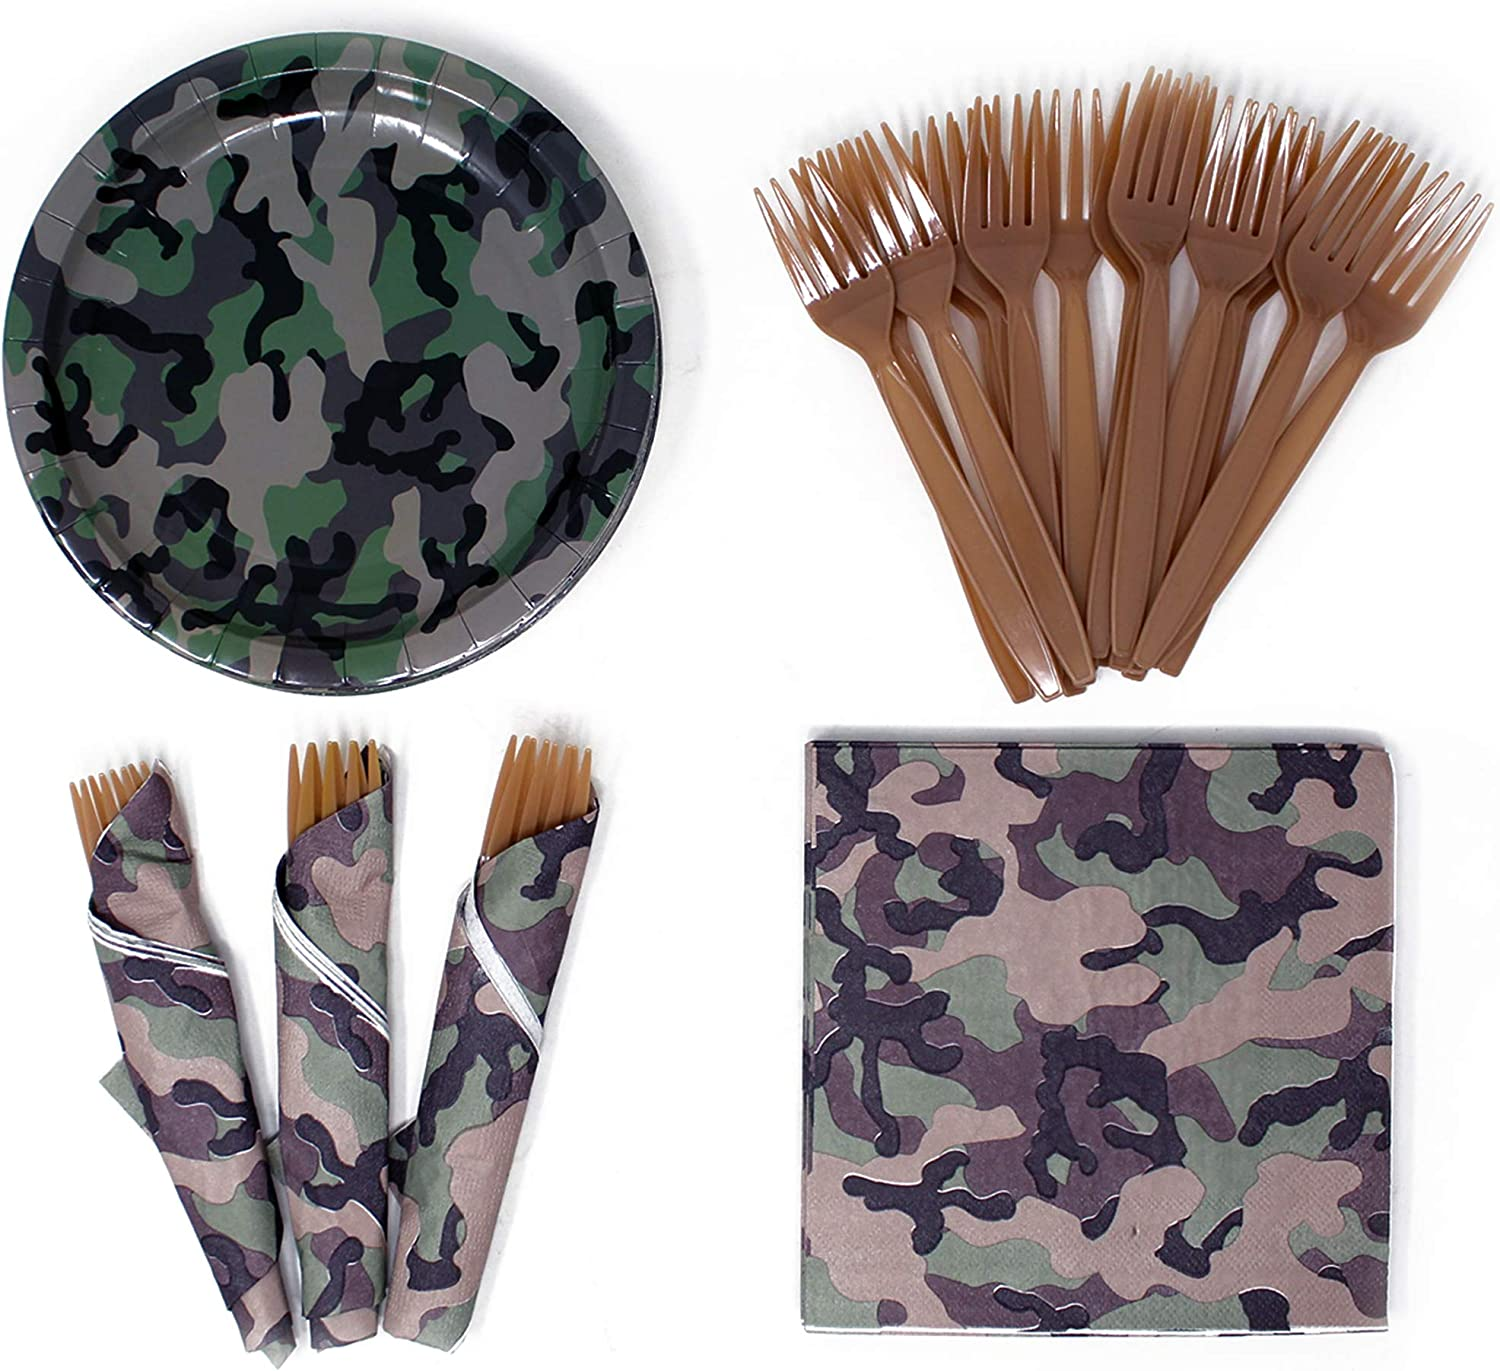 Camo Value Party Supplies Pack (58+ Pieces for 16 Guests), Value Party Kit, Camouflage Party Plates, Camo Birthday, Napkins, Forks, Tableware